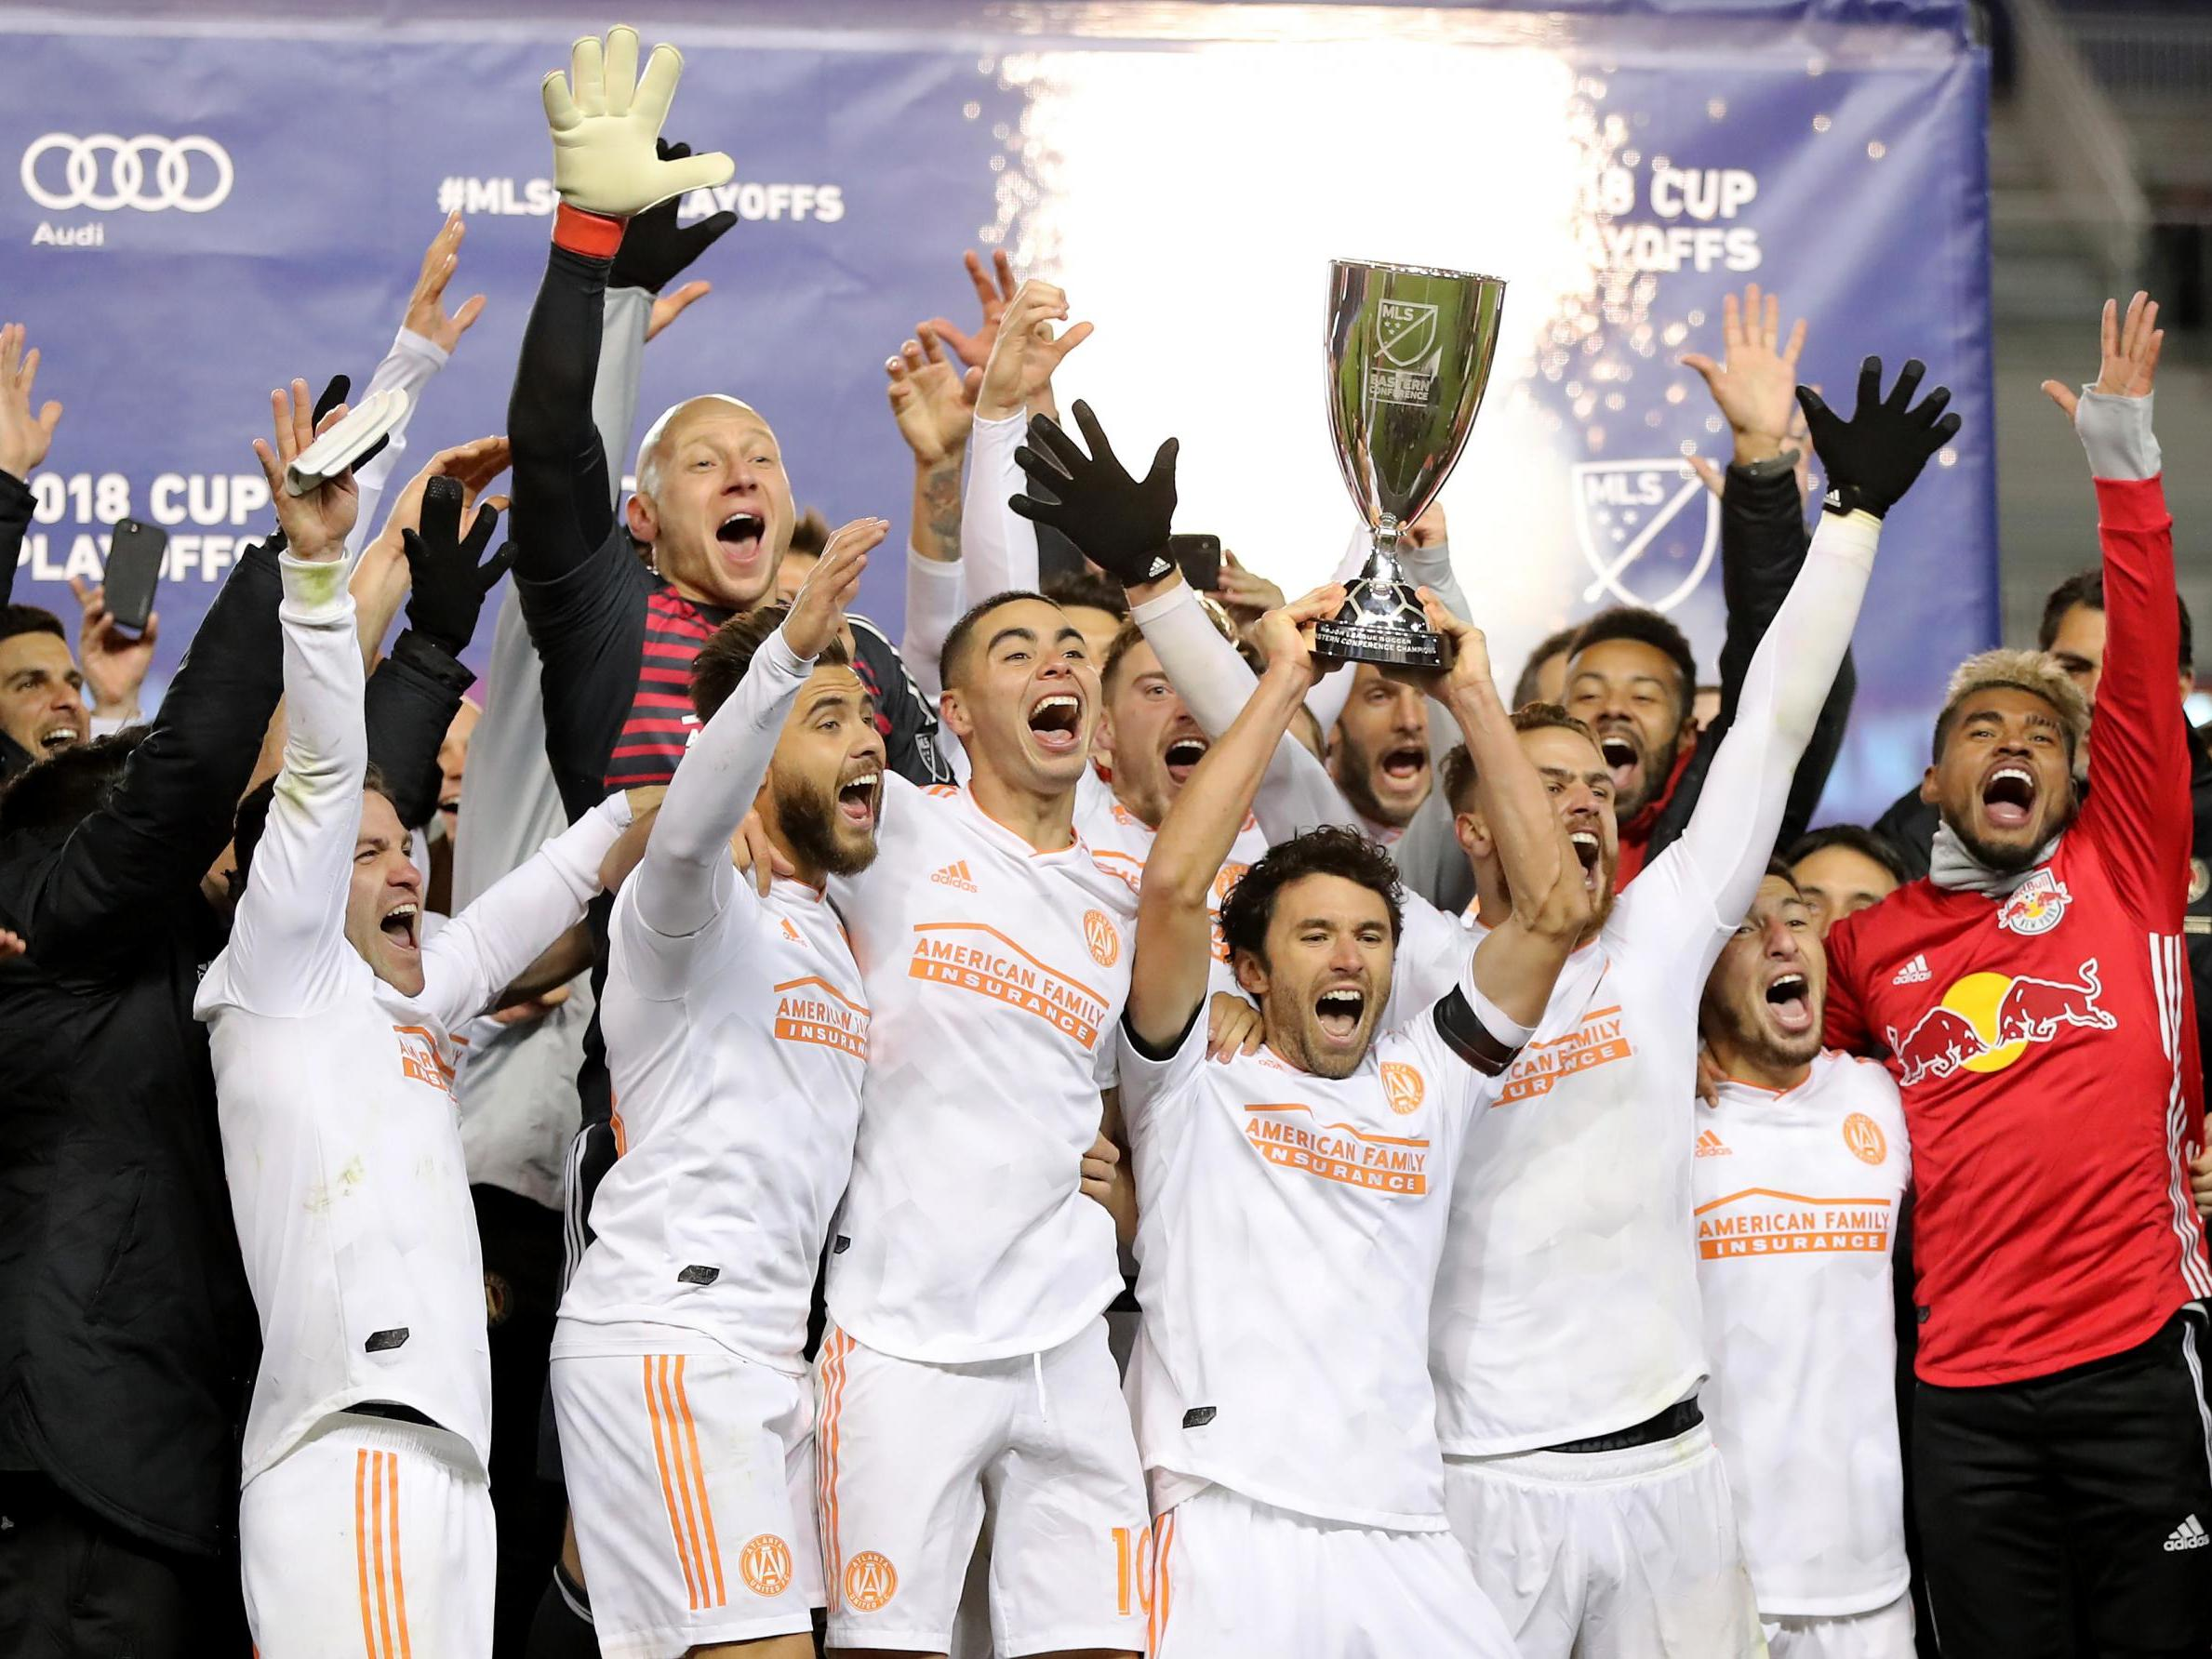 MLS Cup final: Atlanta United's fairy tale rise comes to a head with chance to finally put the city on the map